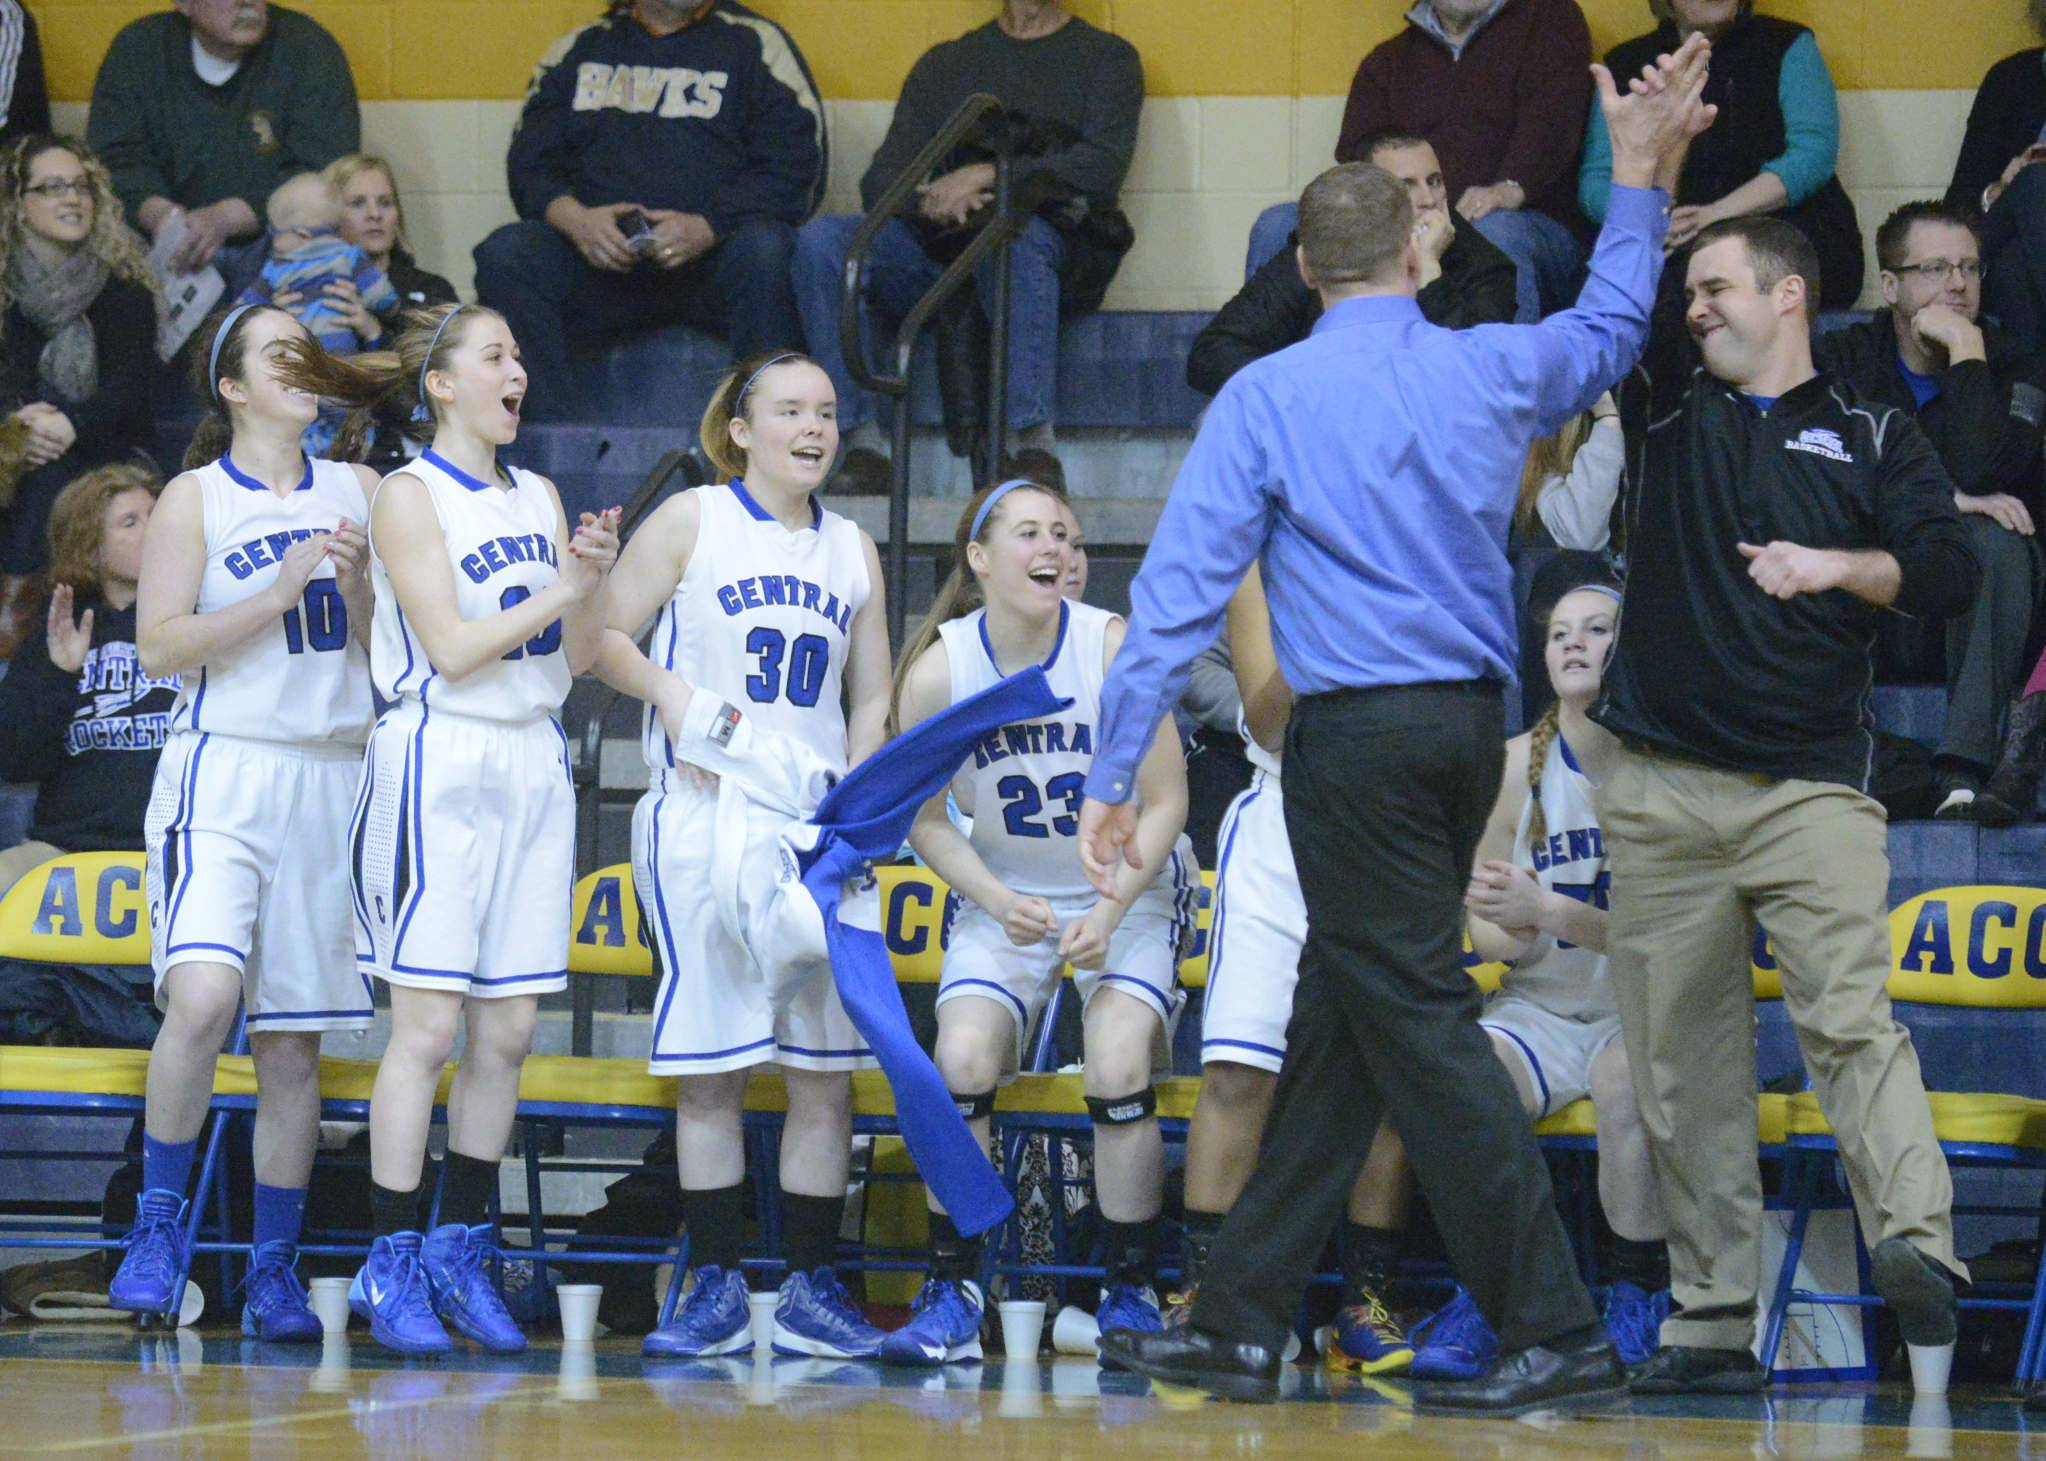 Burlington Central girls basketball coach Mark Smith high-fives assistant coach Kyle Molik near the end of the Rockets' regional final win over St. Edward.